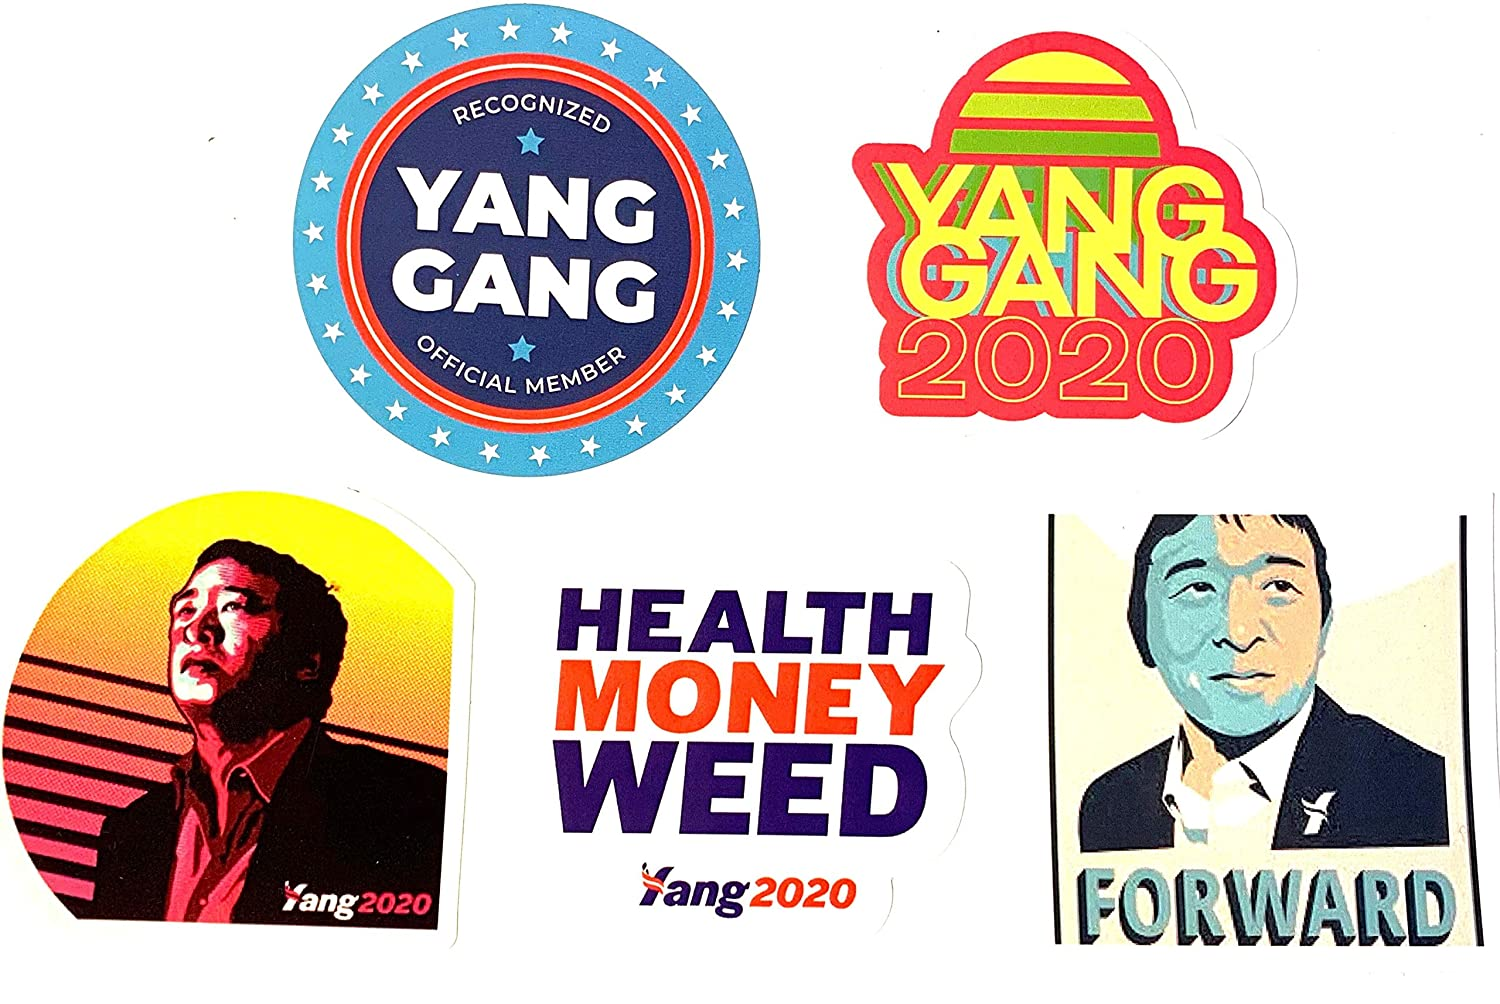 Andrew Yang 2020 Variety Sticker Pack of 5. 5 UV-Proof Laminated Stickers